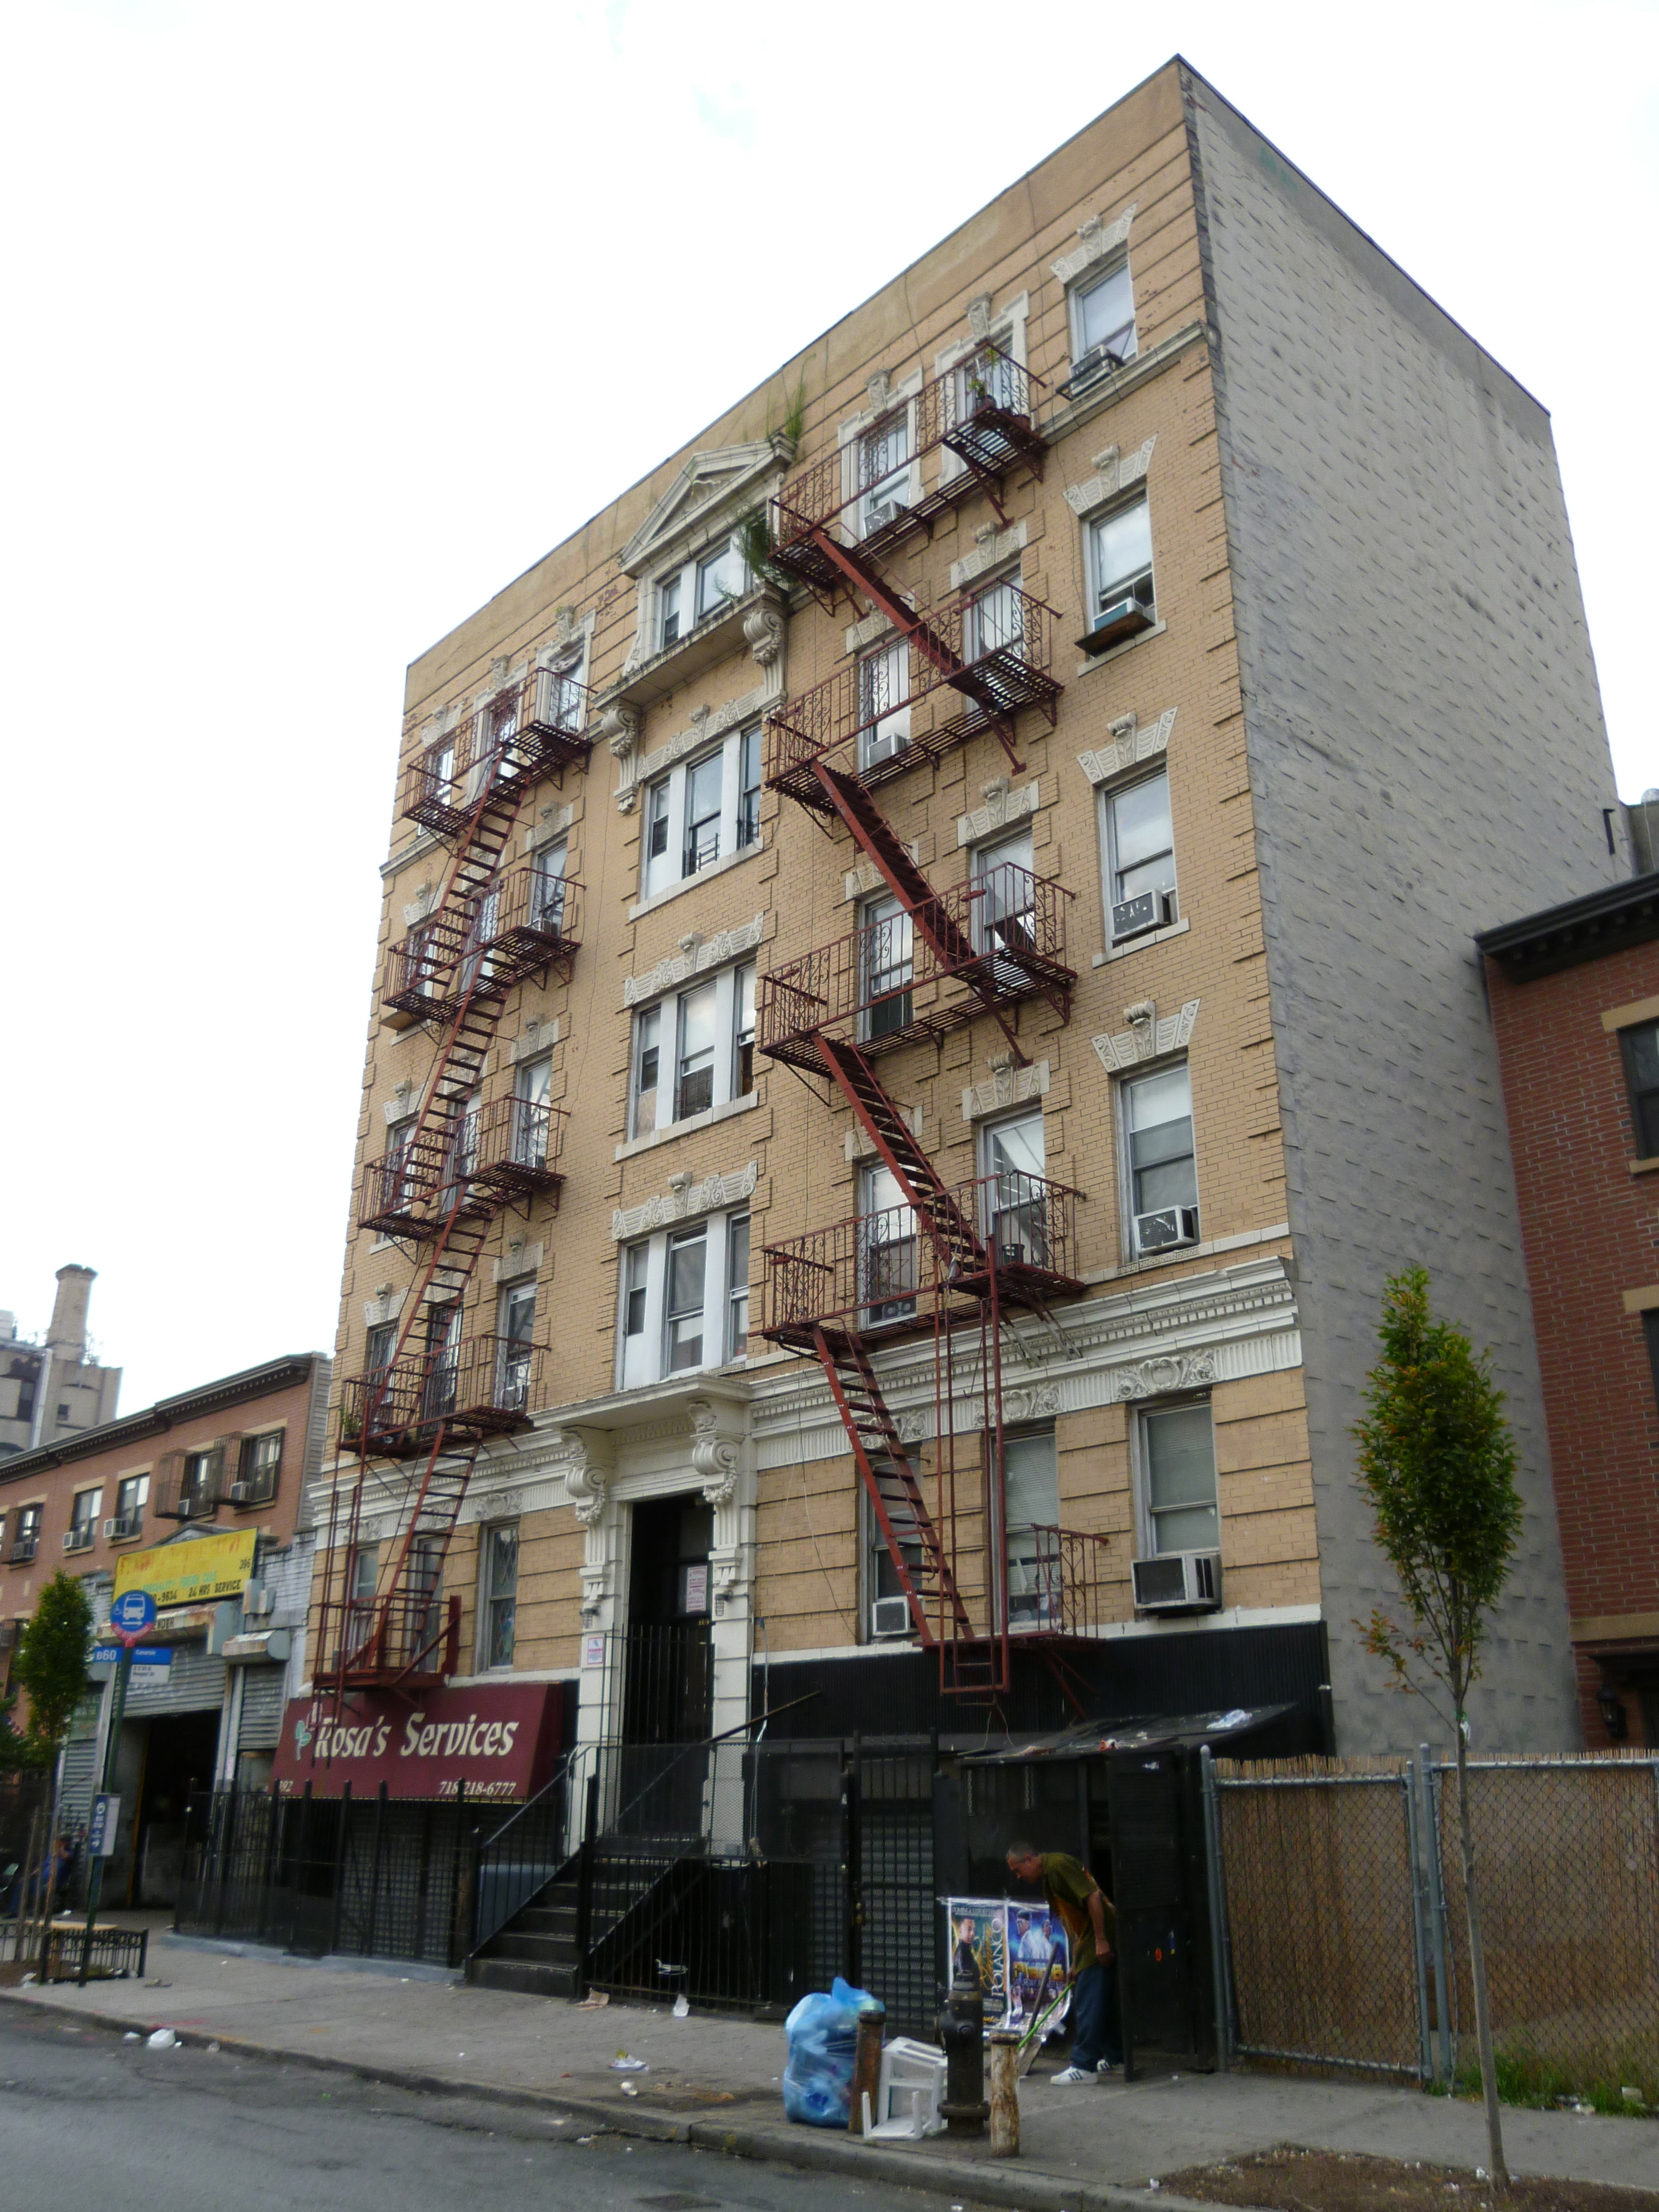 Where Is The Coming To America Apartment